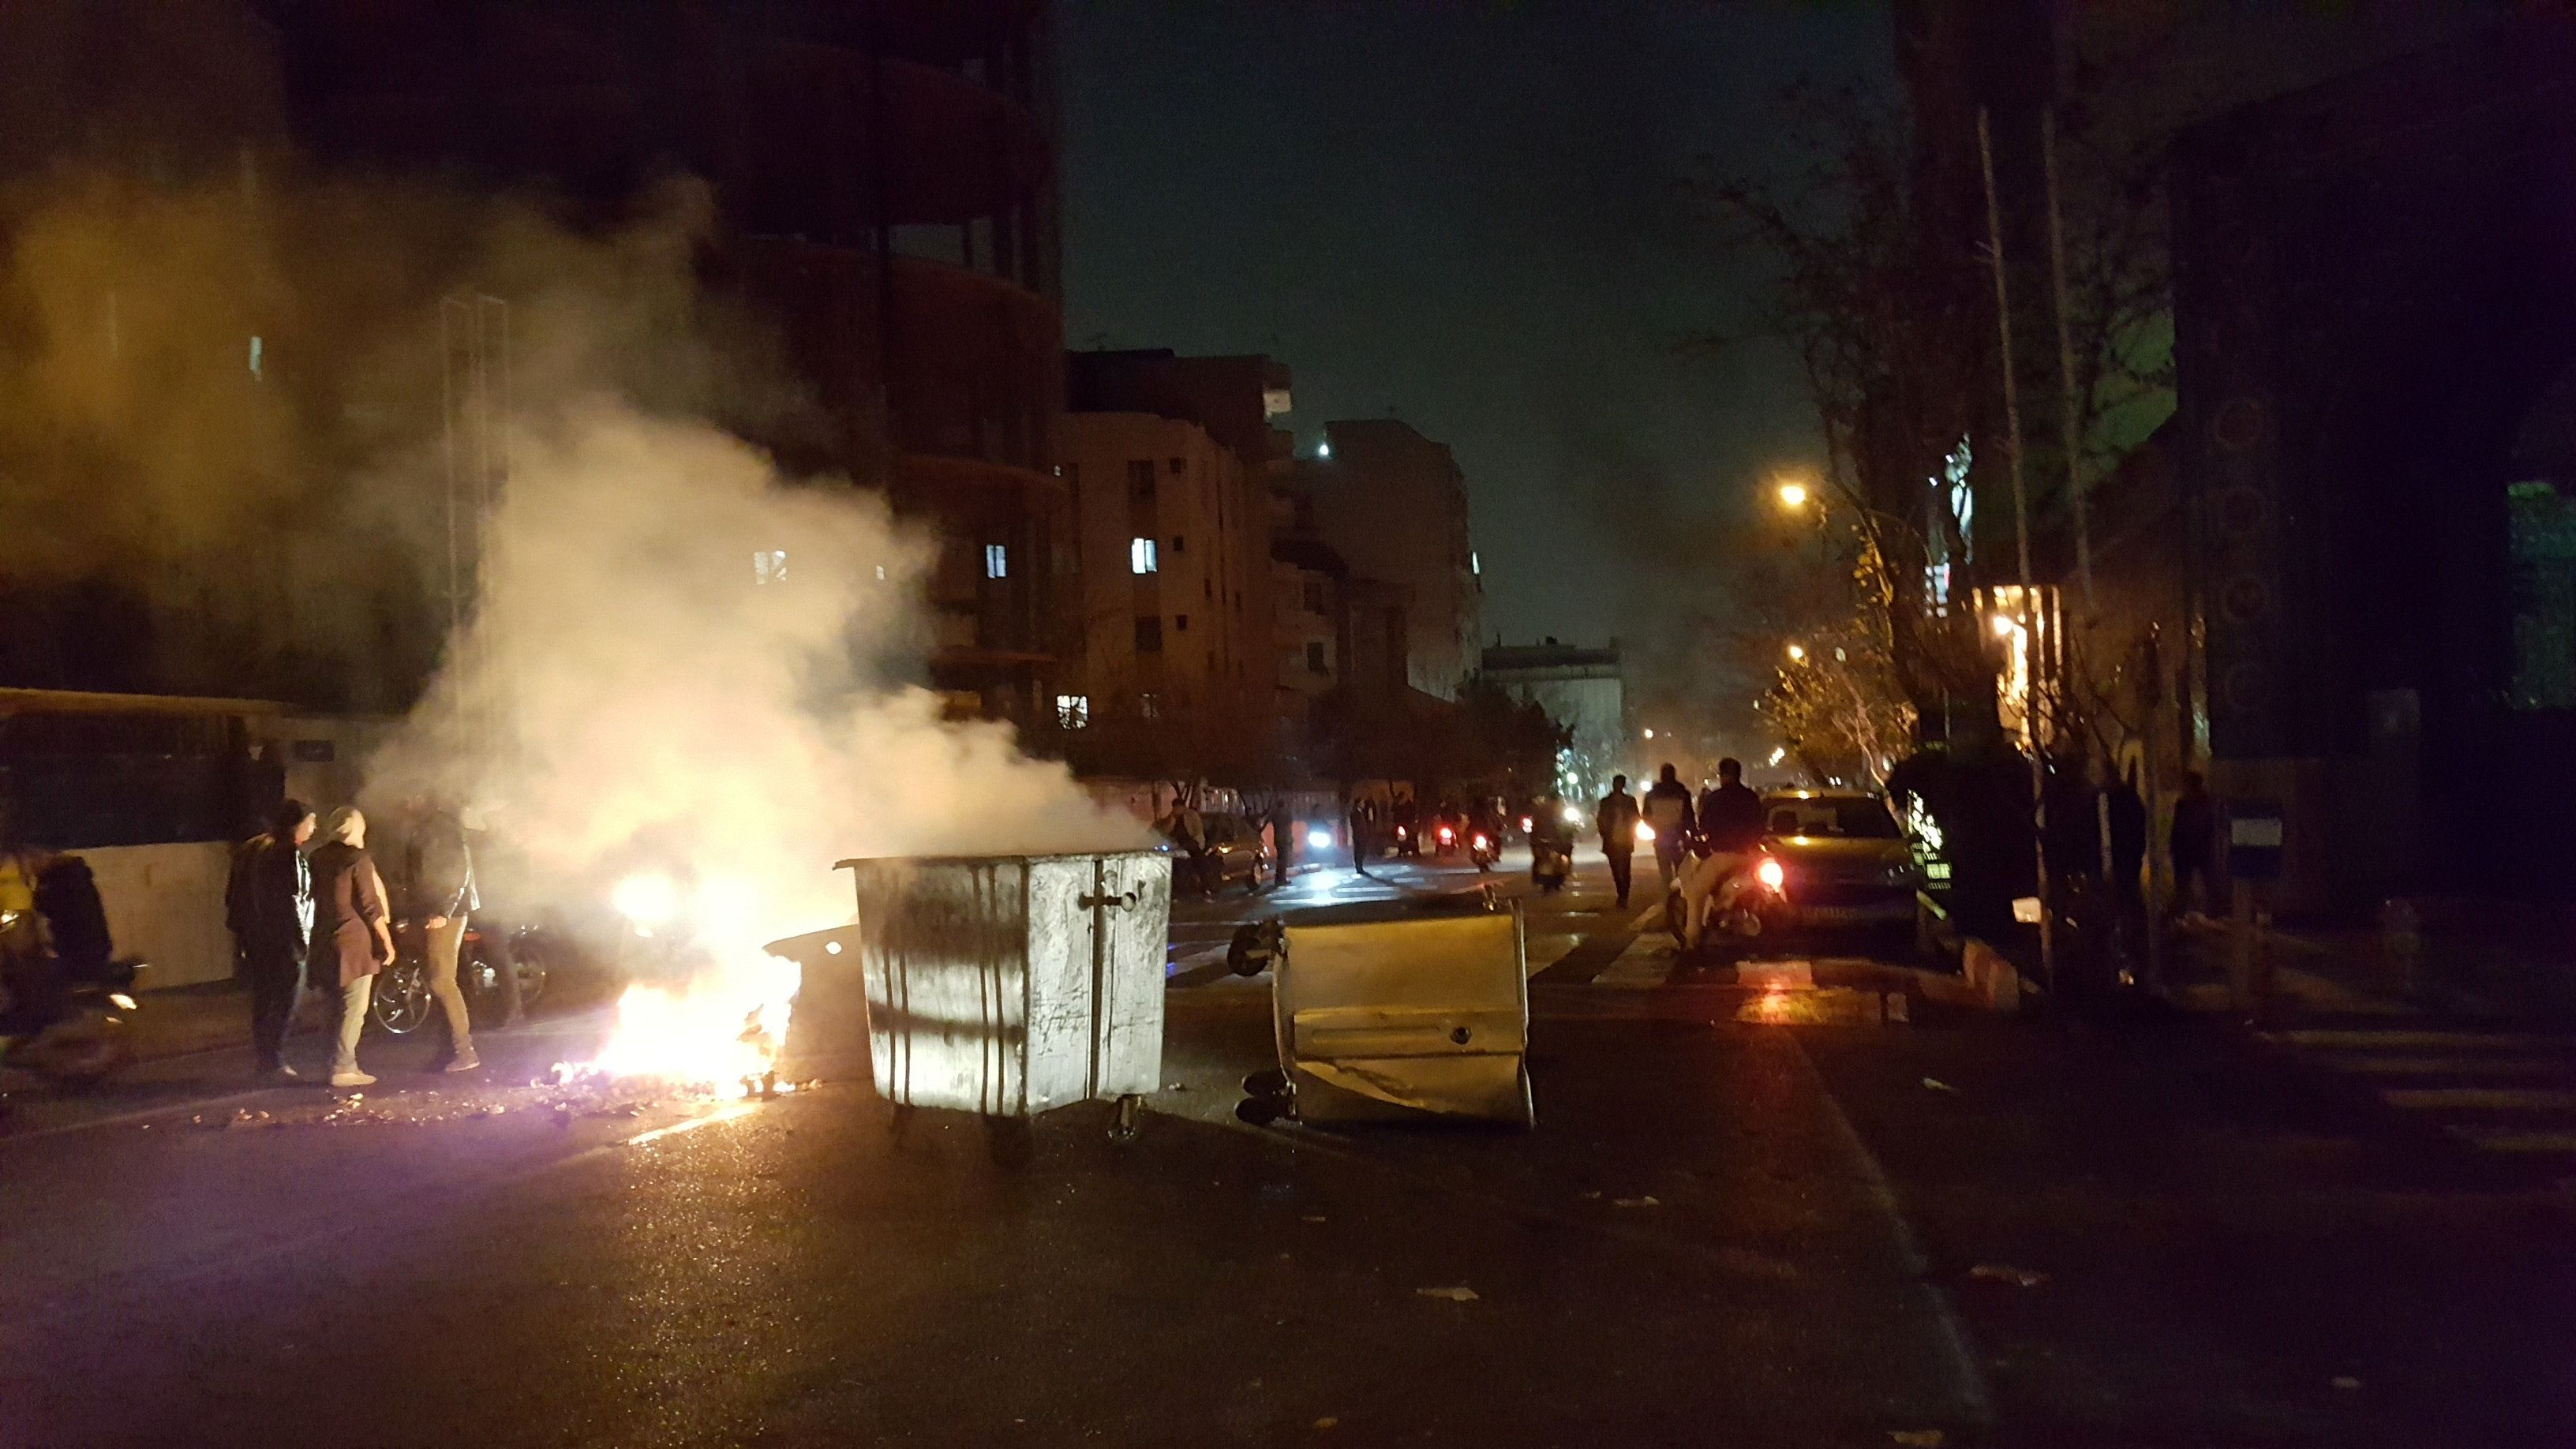 Policeman killed amid crackdown on Iran protests